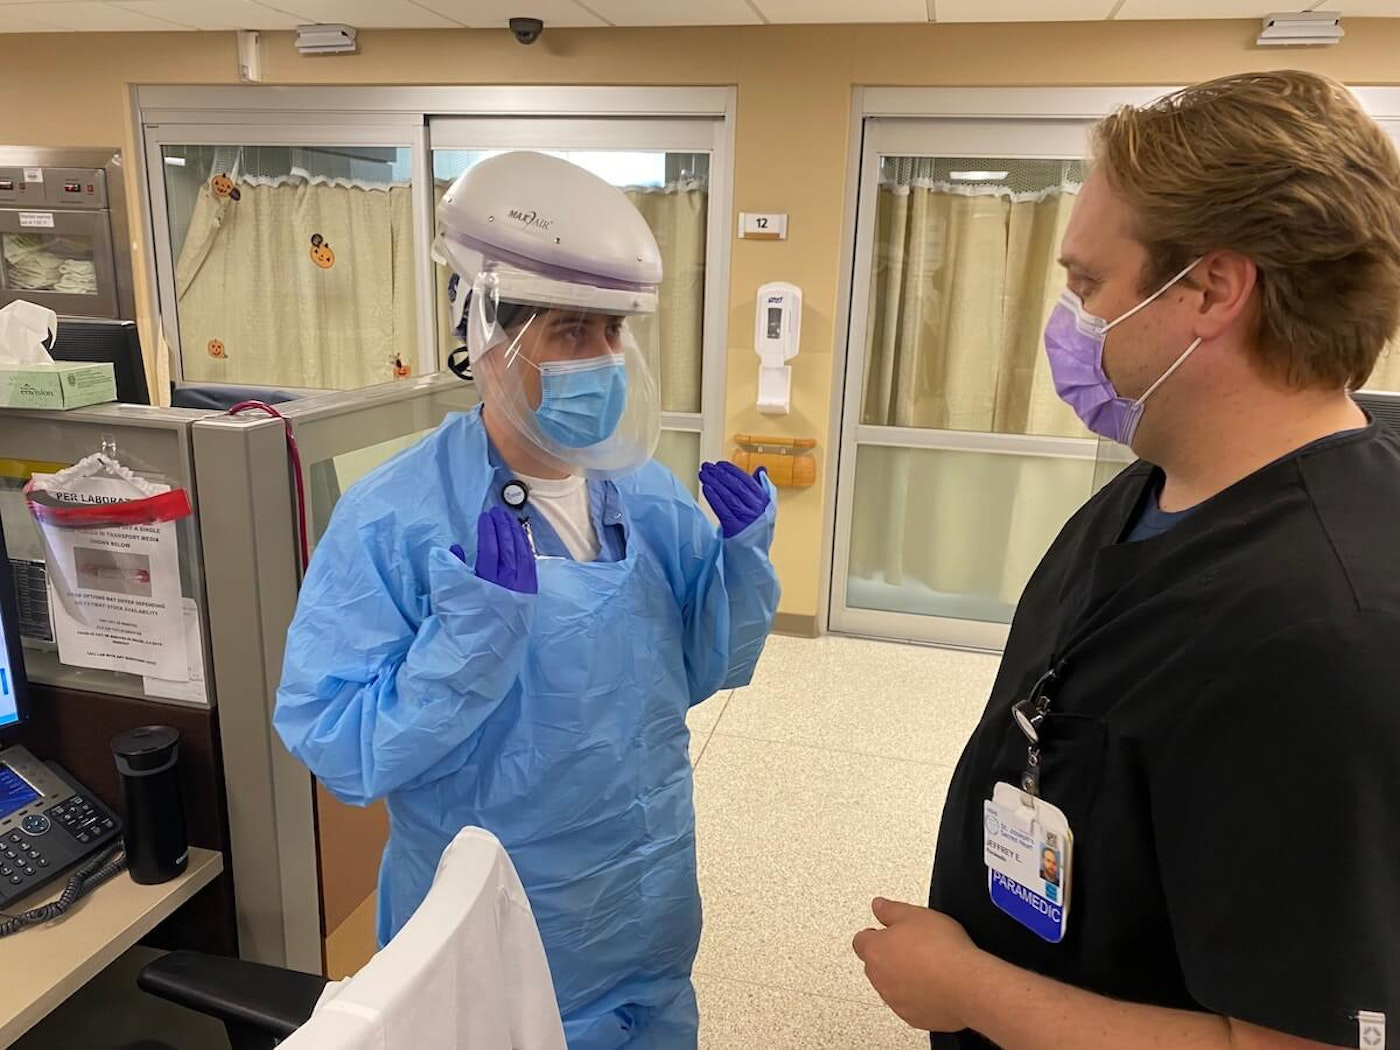 Tyler Bowe, left, an emergency room nurse at HSHS Sacred Heart Hospital in Eau Claire, talks with Jeffrey Ellenbecker, a paramedic at the hospital, before he enters the room of a COVID-19 patient Wednesday. (Photo provided by HSHS Sacred Heart Hospital)